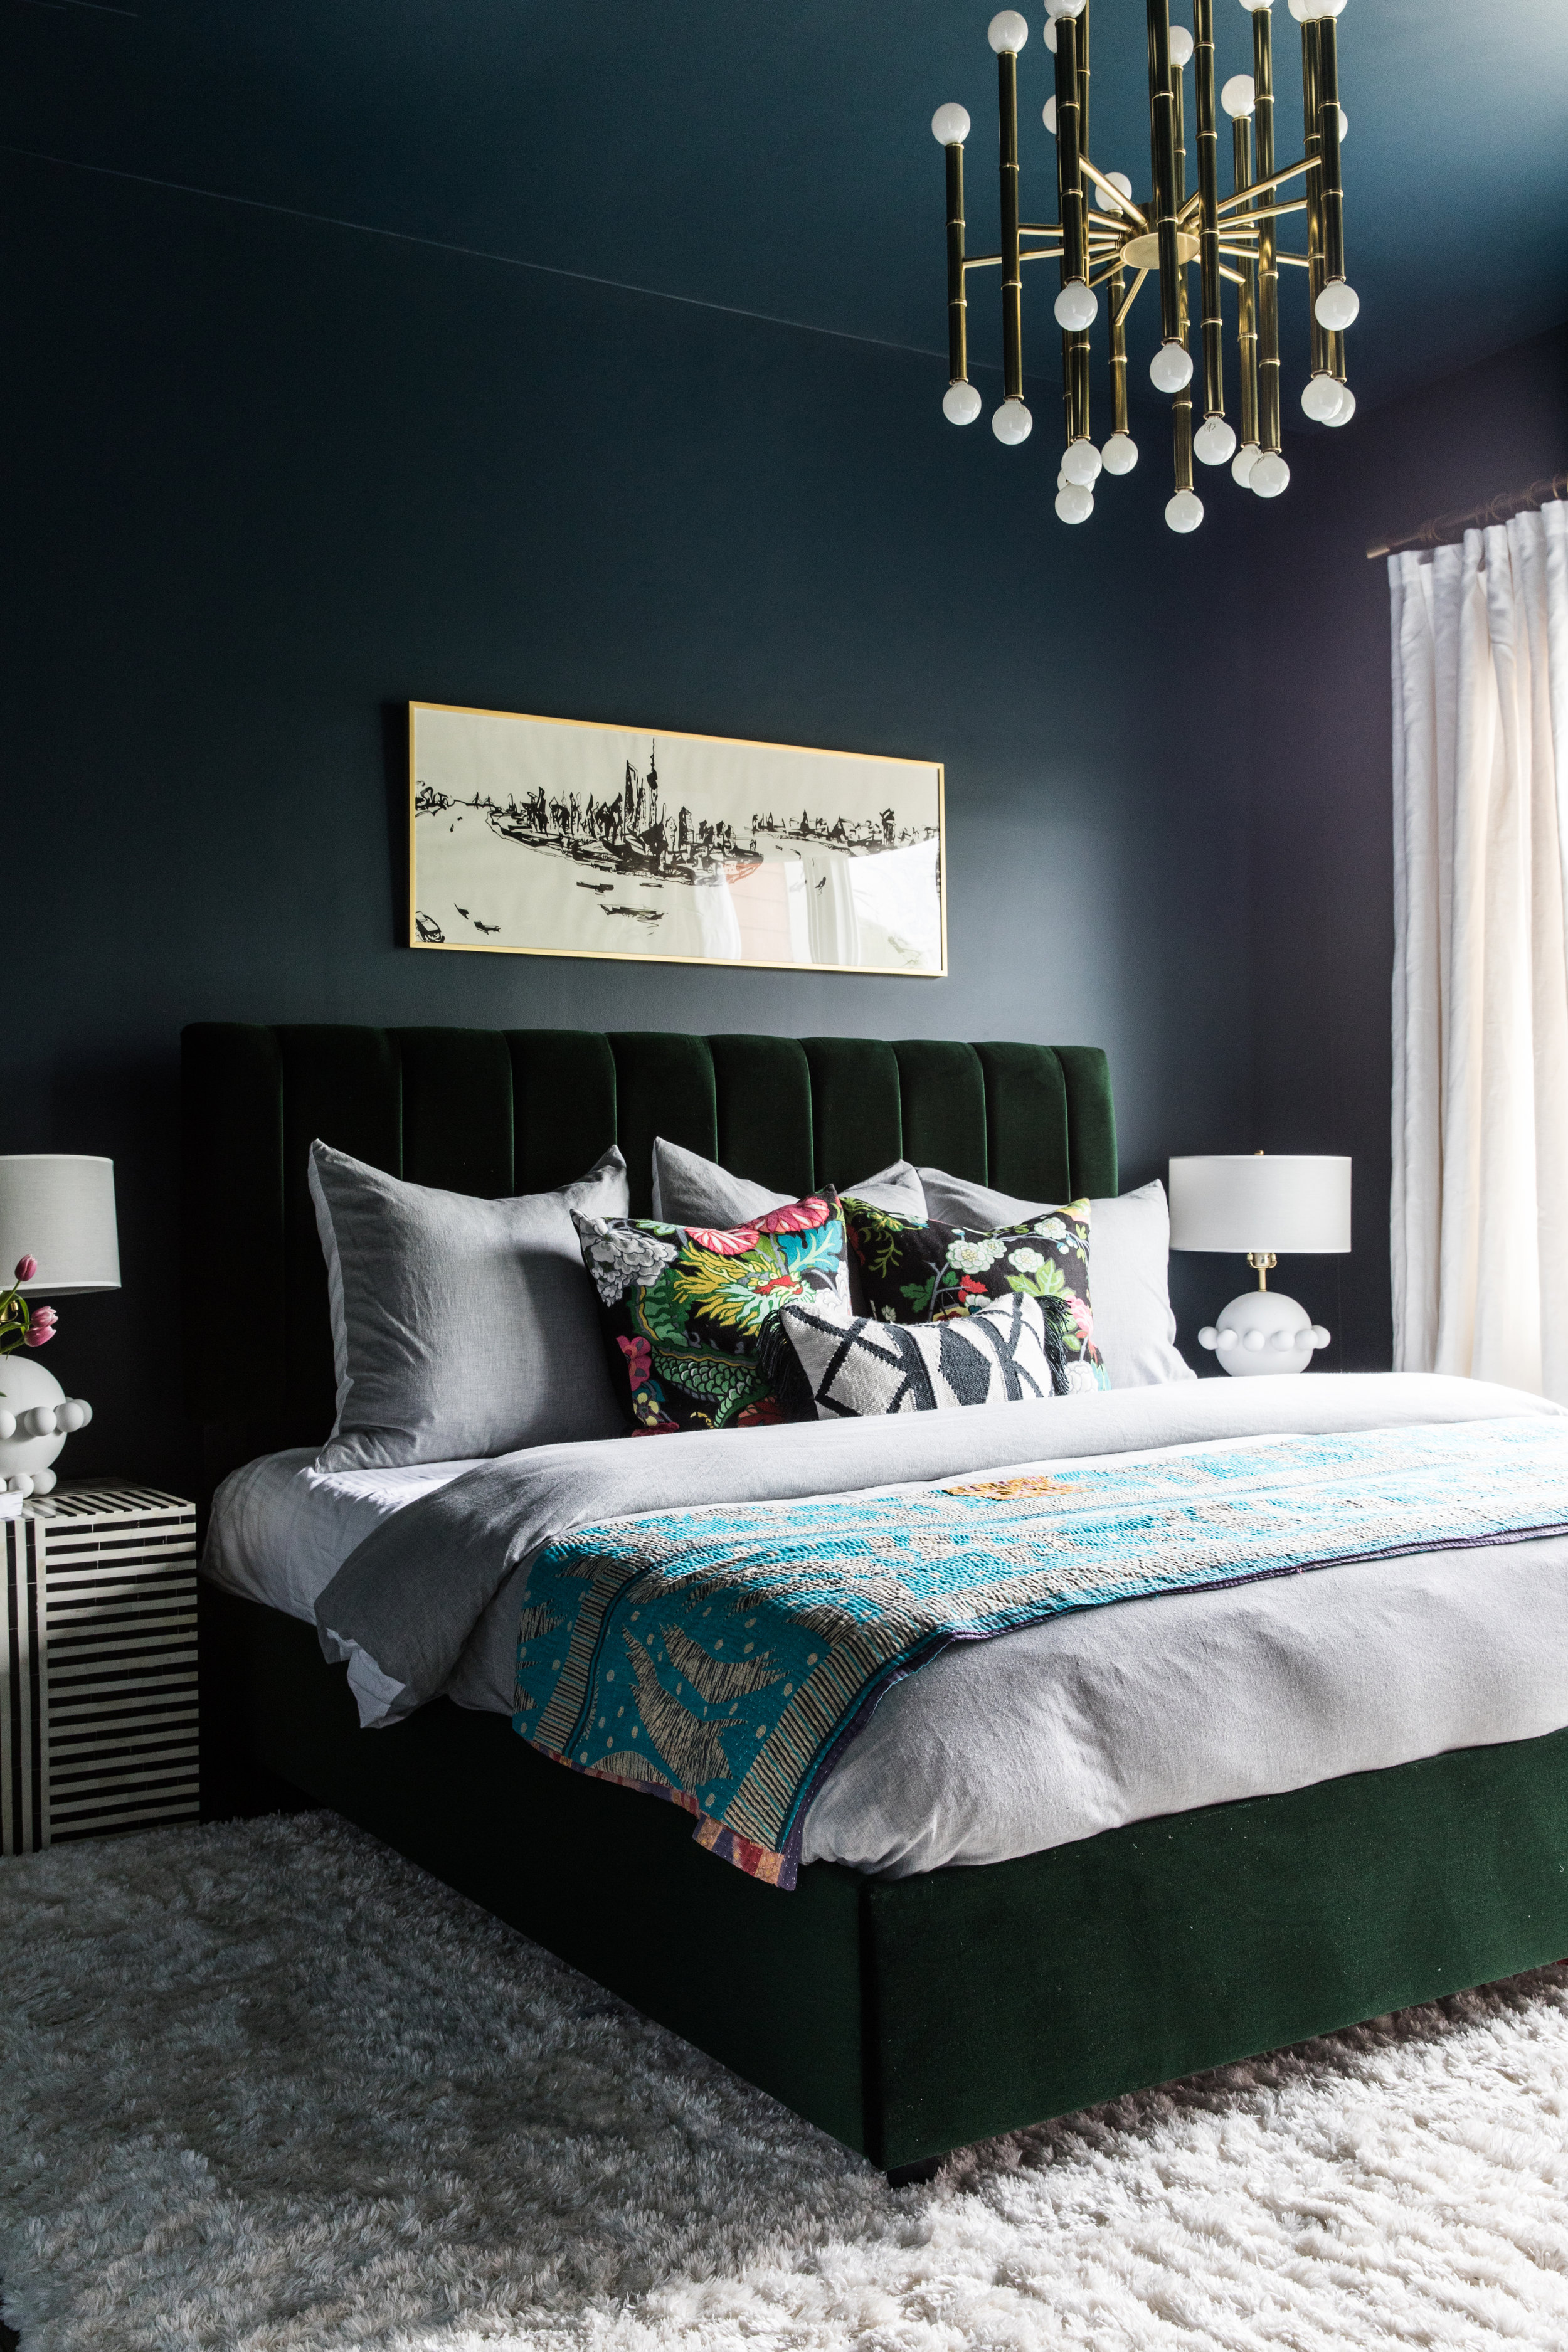 Dark Emerald Green Paint : emerald, green, paint, Drenched, Moody, Paint, House, Nomad